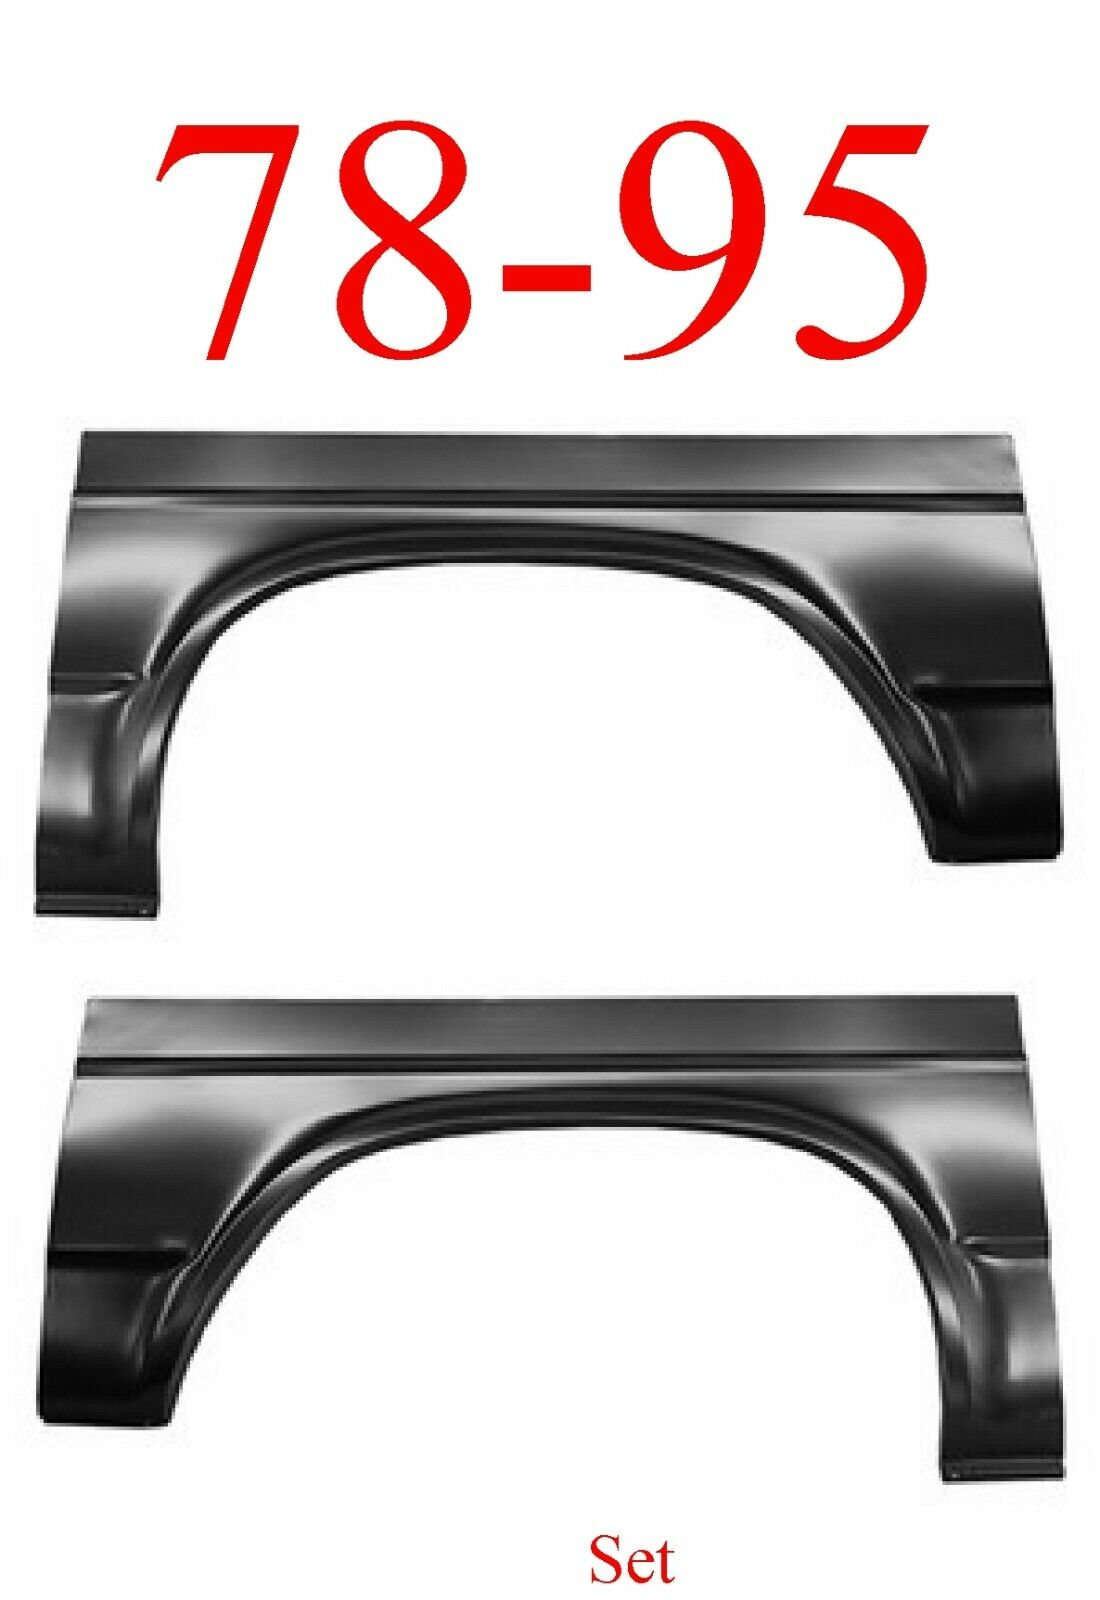 78-95 Chevy Van Rear Arch Set